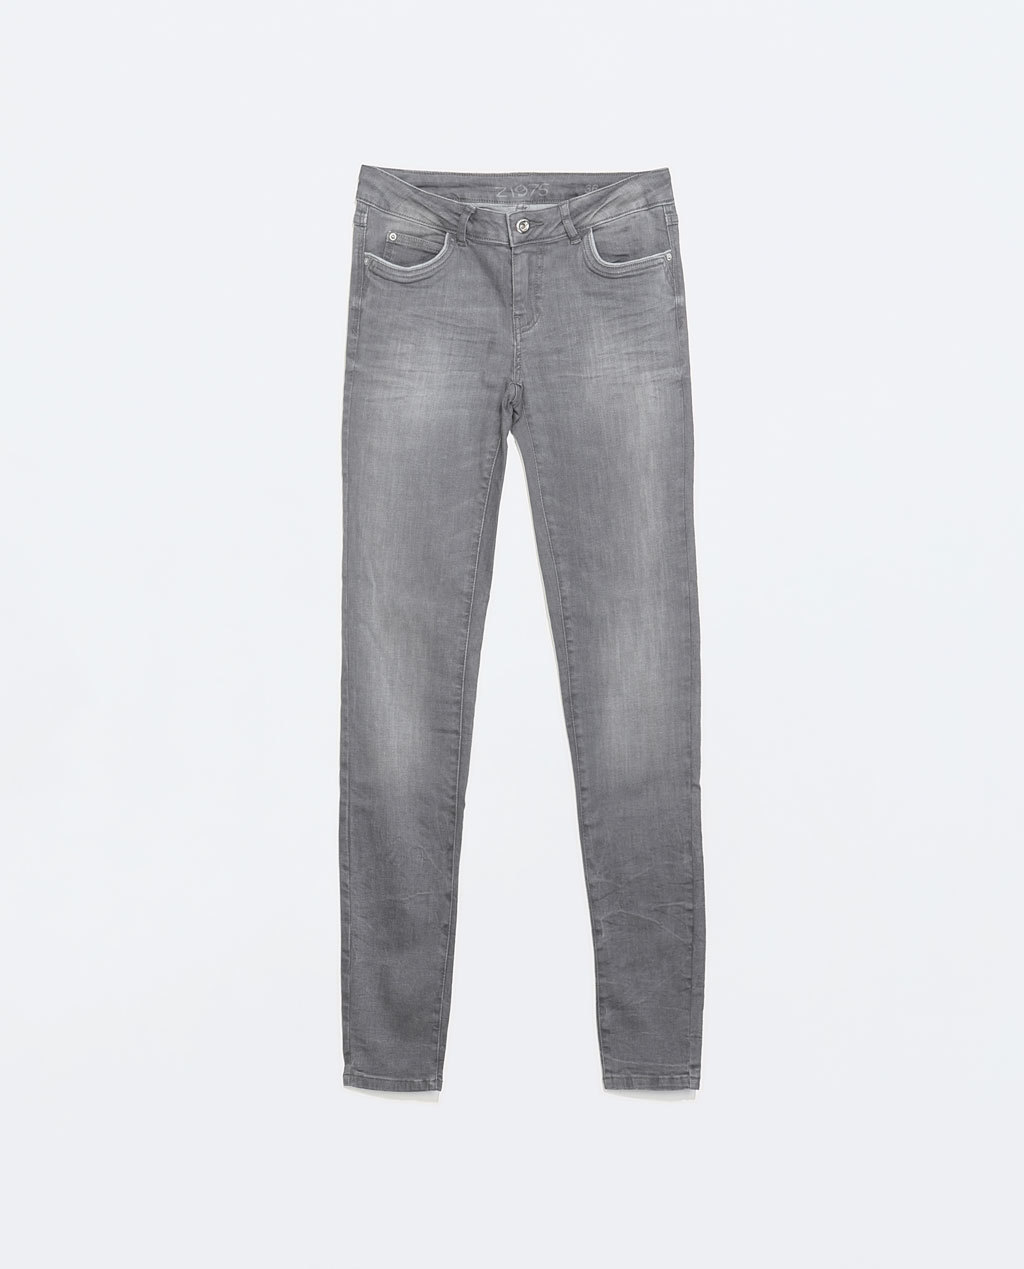 Medium Rise Jeans - style: skinny leg; pattern: plain; pocket detail: traditional 5 pocket; waist: mid/regular rise; predominant colour: mid grey; occasions: casual; length: ankle length; fibres: cotton - stretch; jeans detail: whiskering, shading down centre of thigh; texture group: denim; pattern type: fabric; season: a/w 2014